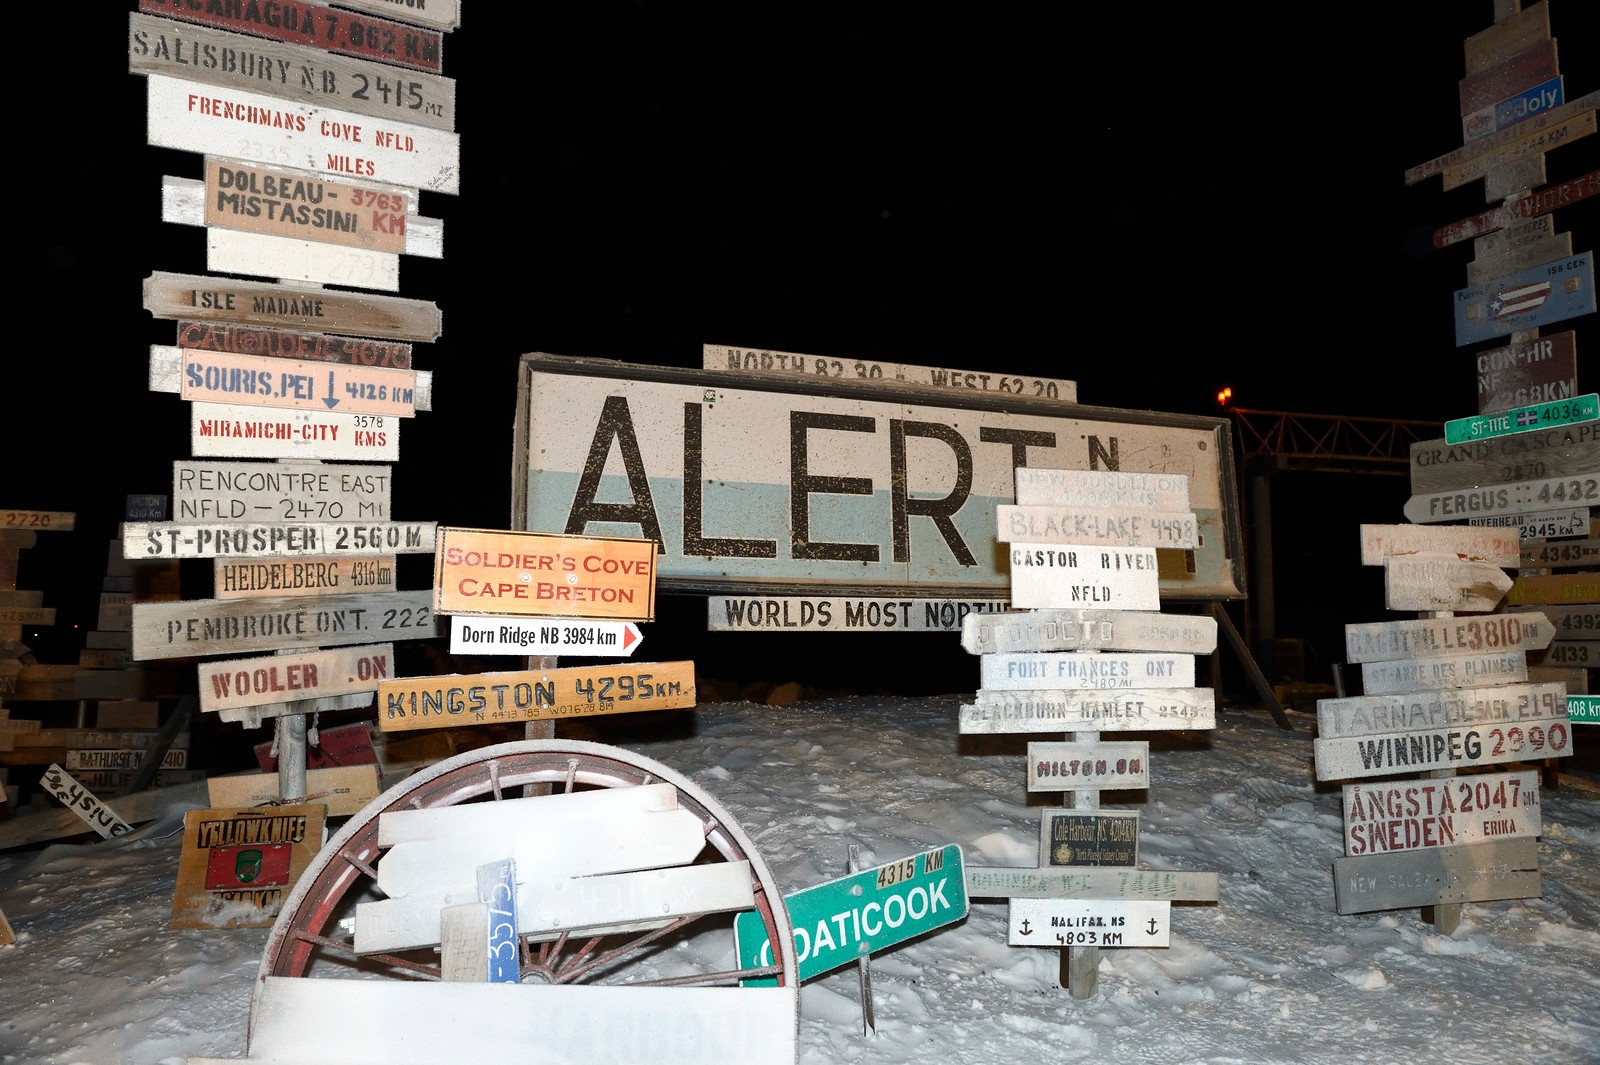 The original welcome sign at Canadian Forces Station Alert, Nunavut, with the many location and direction signs that have been added to it throughout the years. Alert's long winter night – this photo was taken in the early afternoon of January 19, 2015 – makes it an ideal location to test a virtual reality system designed to maintain astronauts' psychological health on long-duration space flights. PHOTO: Sergeant Ronald Duchesne, Rideau Hall